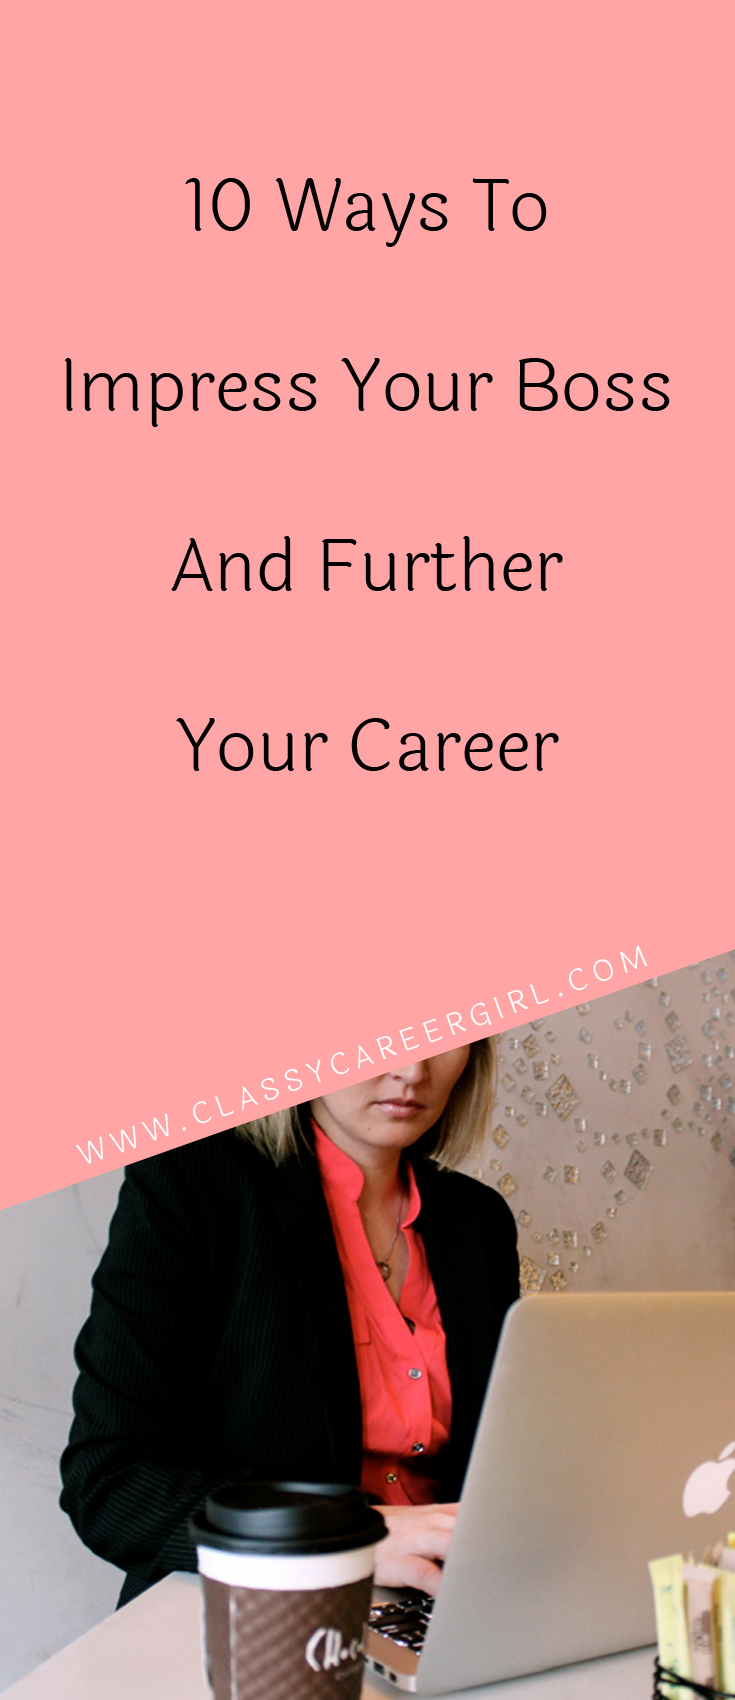 ways to impress your boss and further your career to be we 10 ways to impress your boss and further your career you ve outlined your career